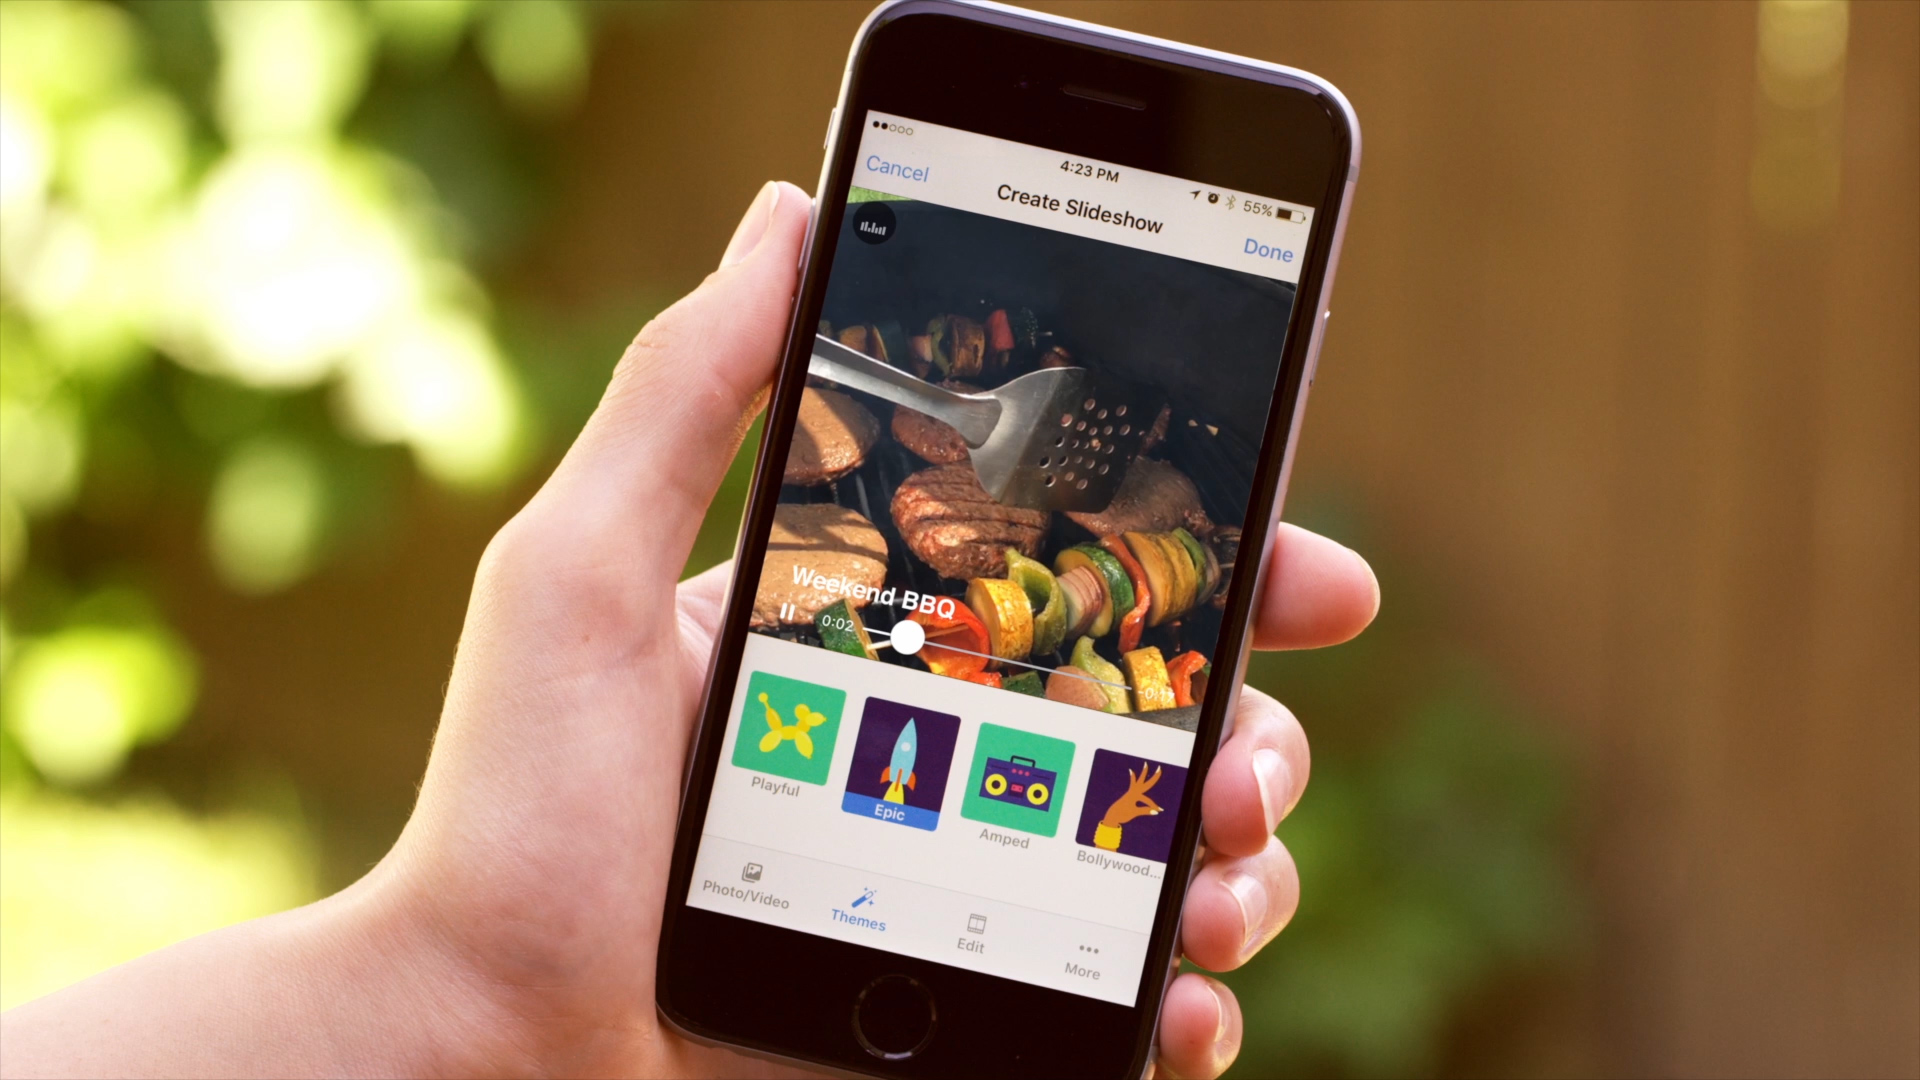 Video: Facebook app builds slideshows for you